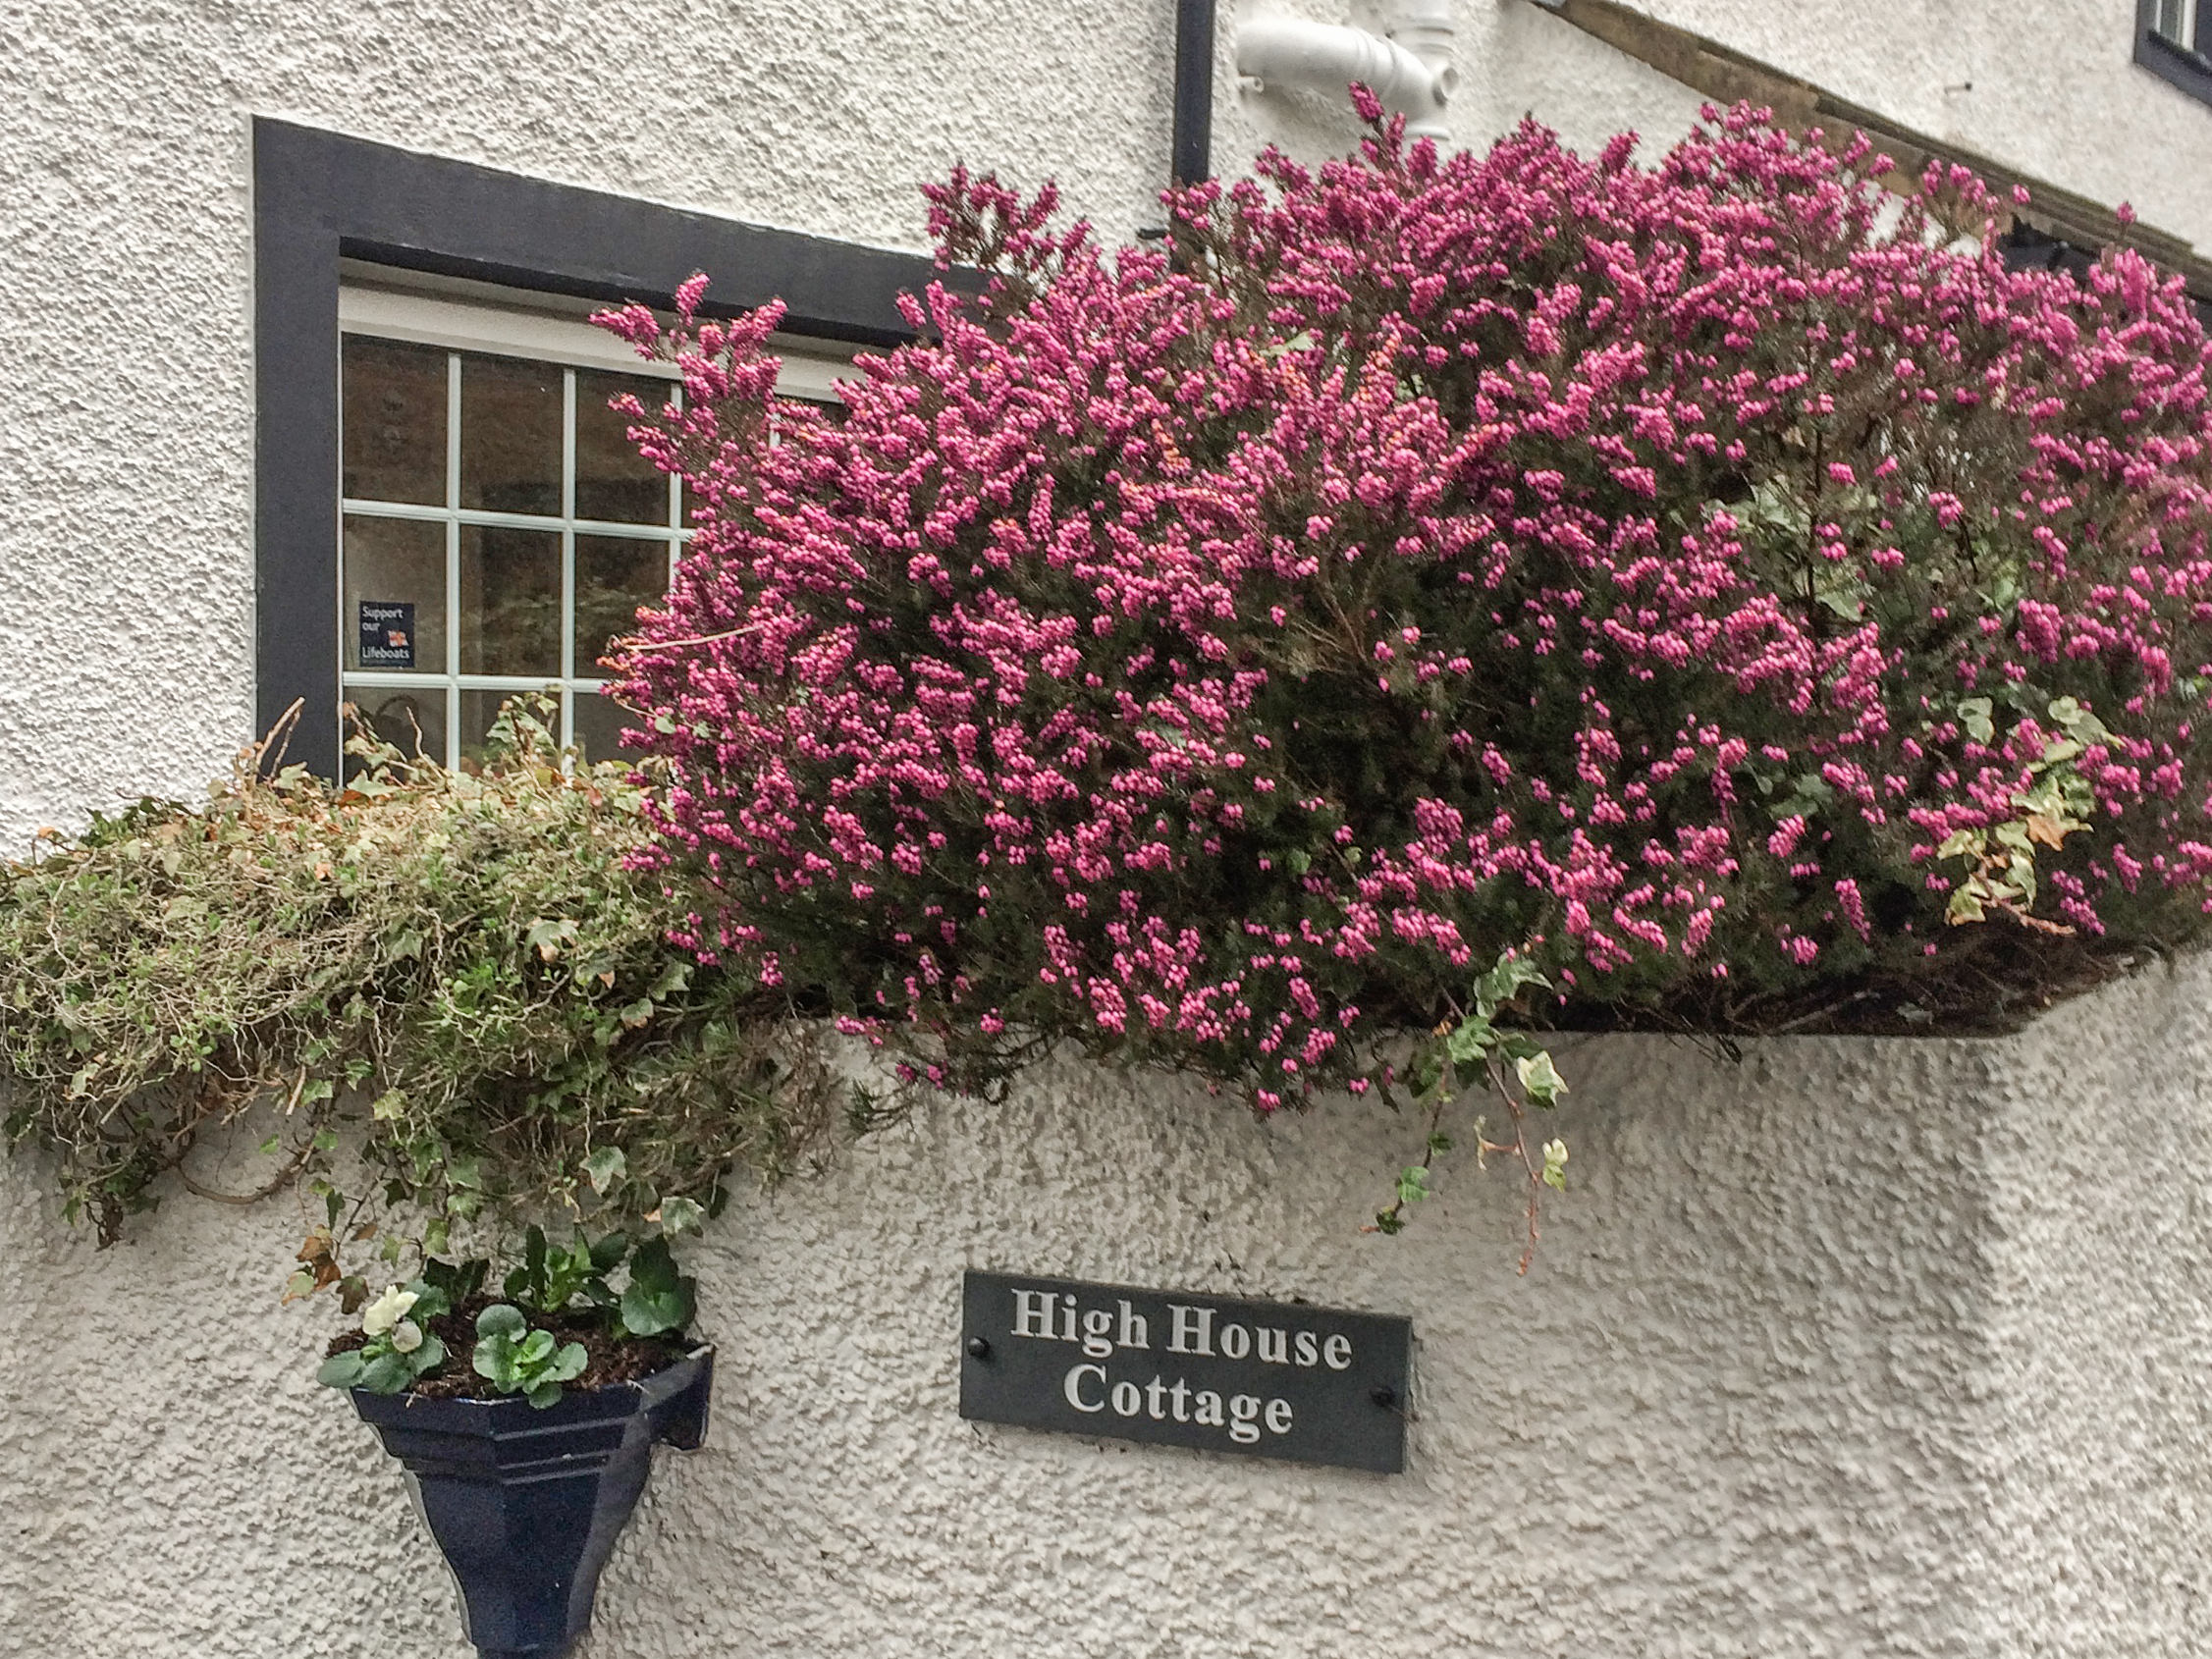 High House Cottage